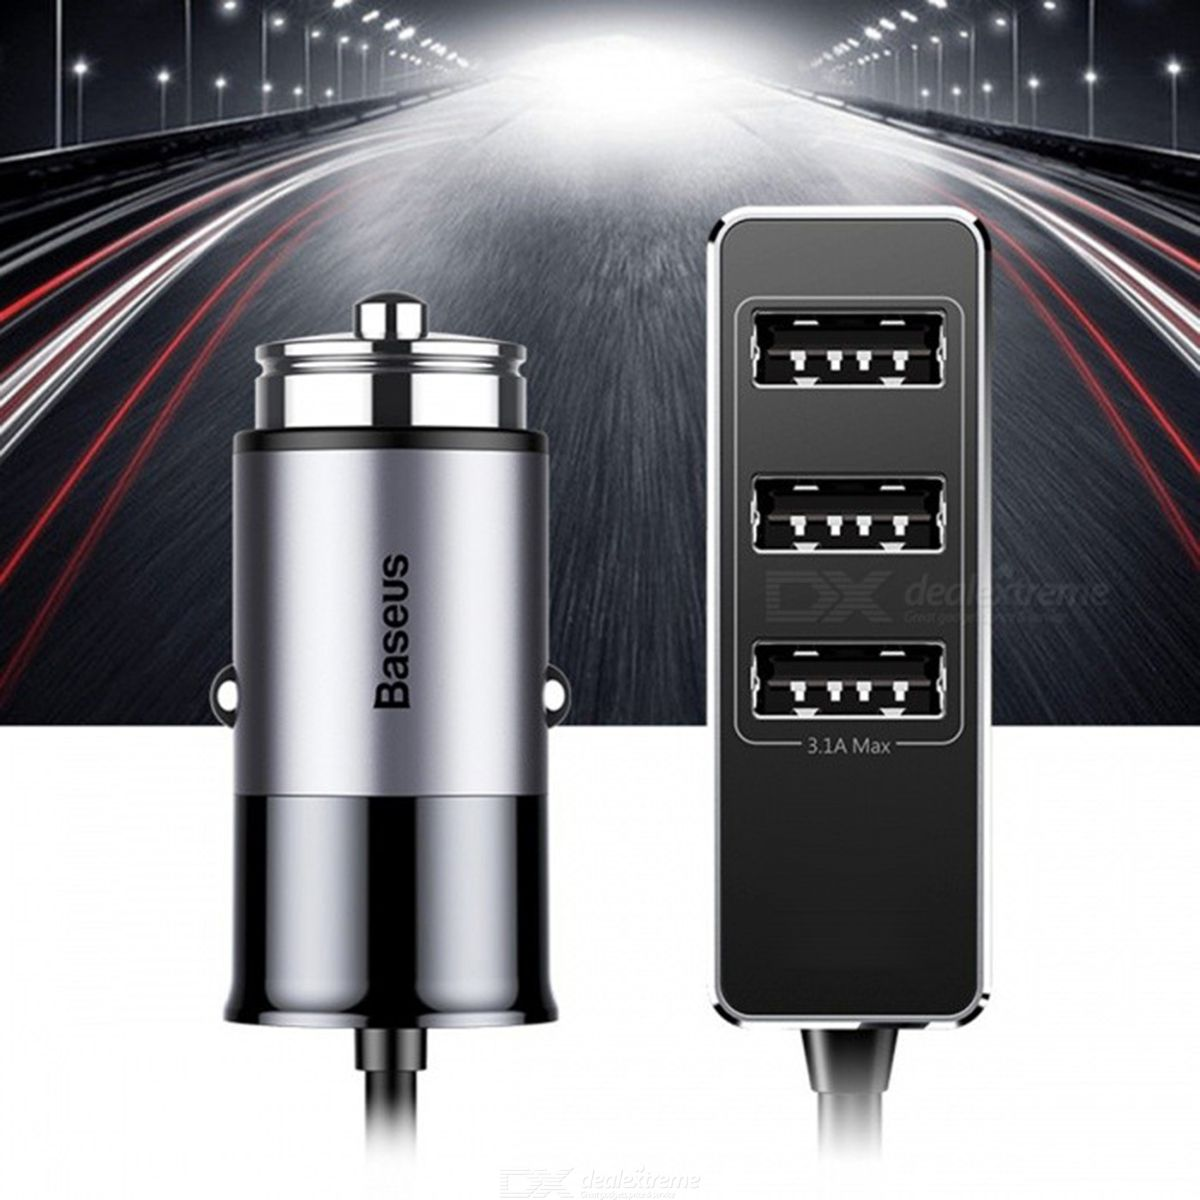 Baseus 5.5A 4-Port USB Car Charger, Multiple Expander Car-charger Adapter, Fast Charge Mobile Phone ChargerUniversal